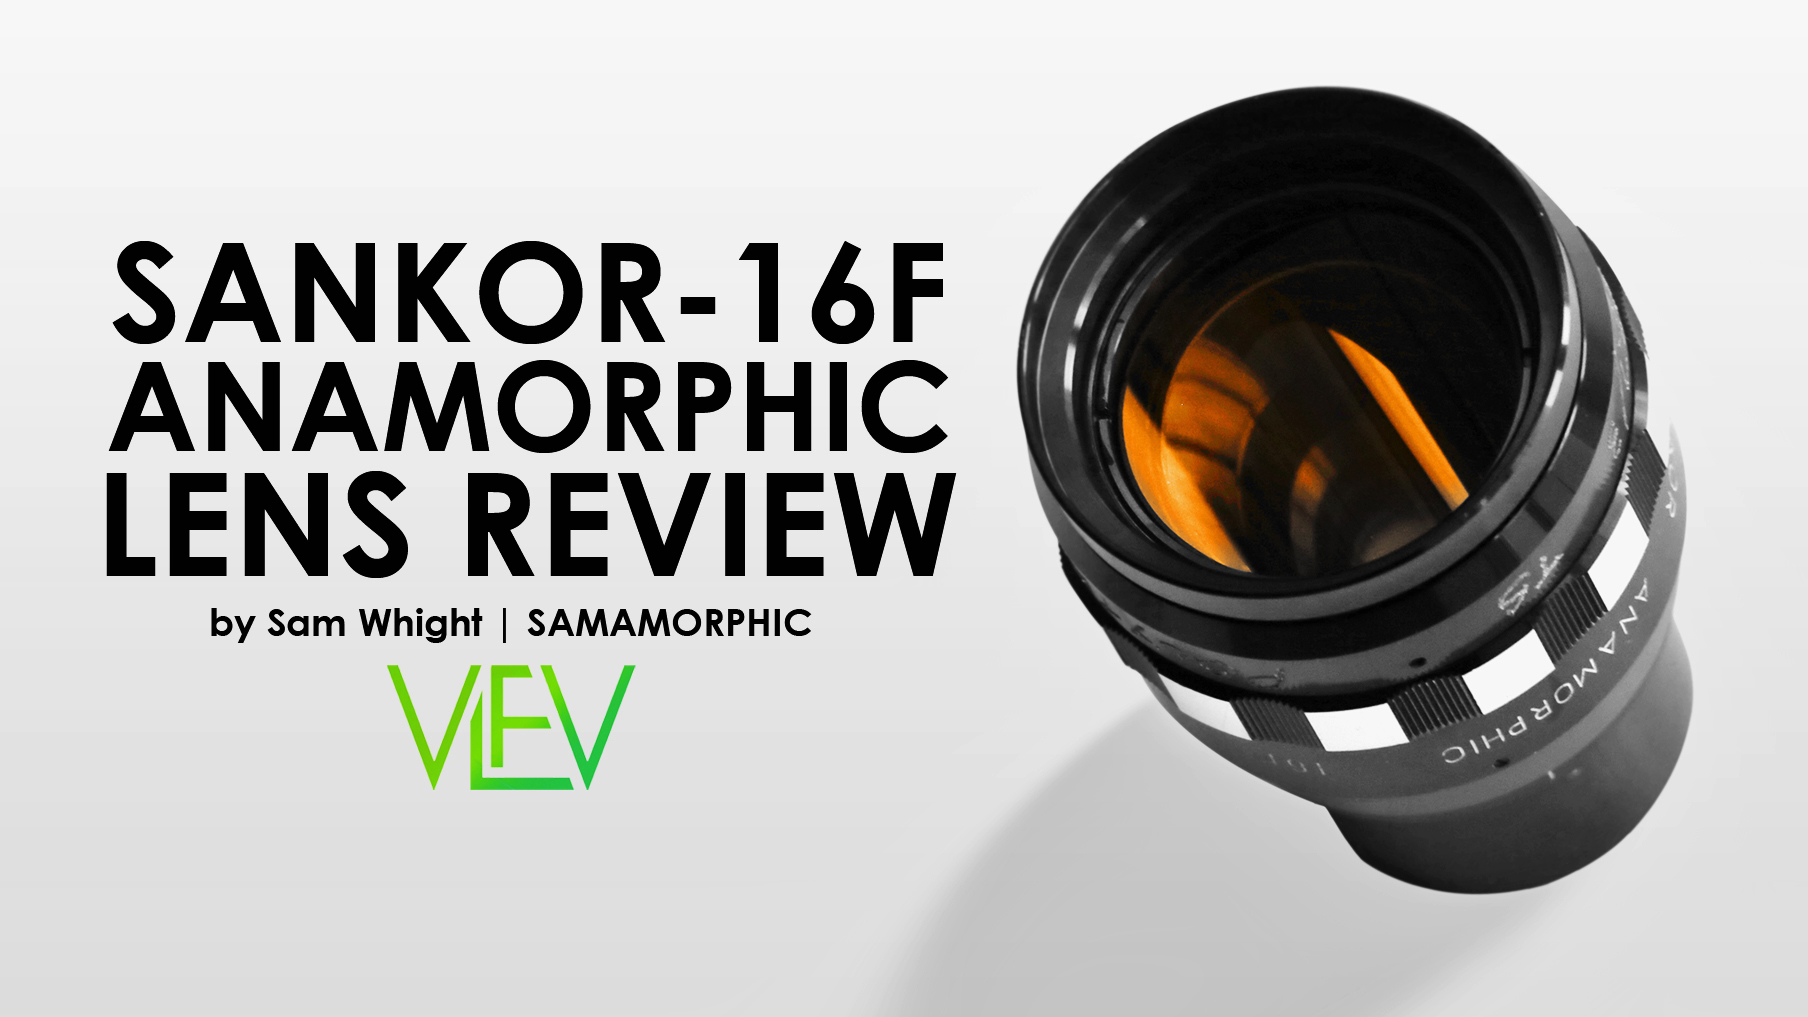 SANKOR 16F Anamorphic Lens REVIEW